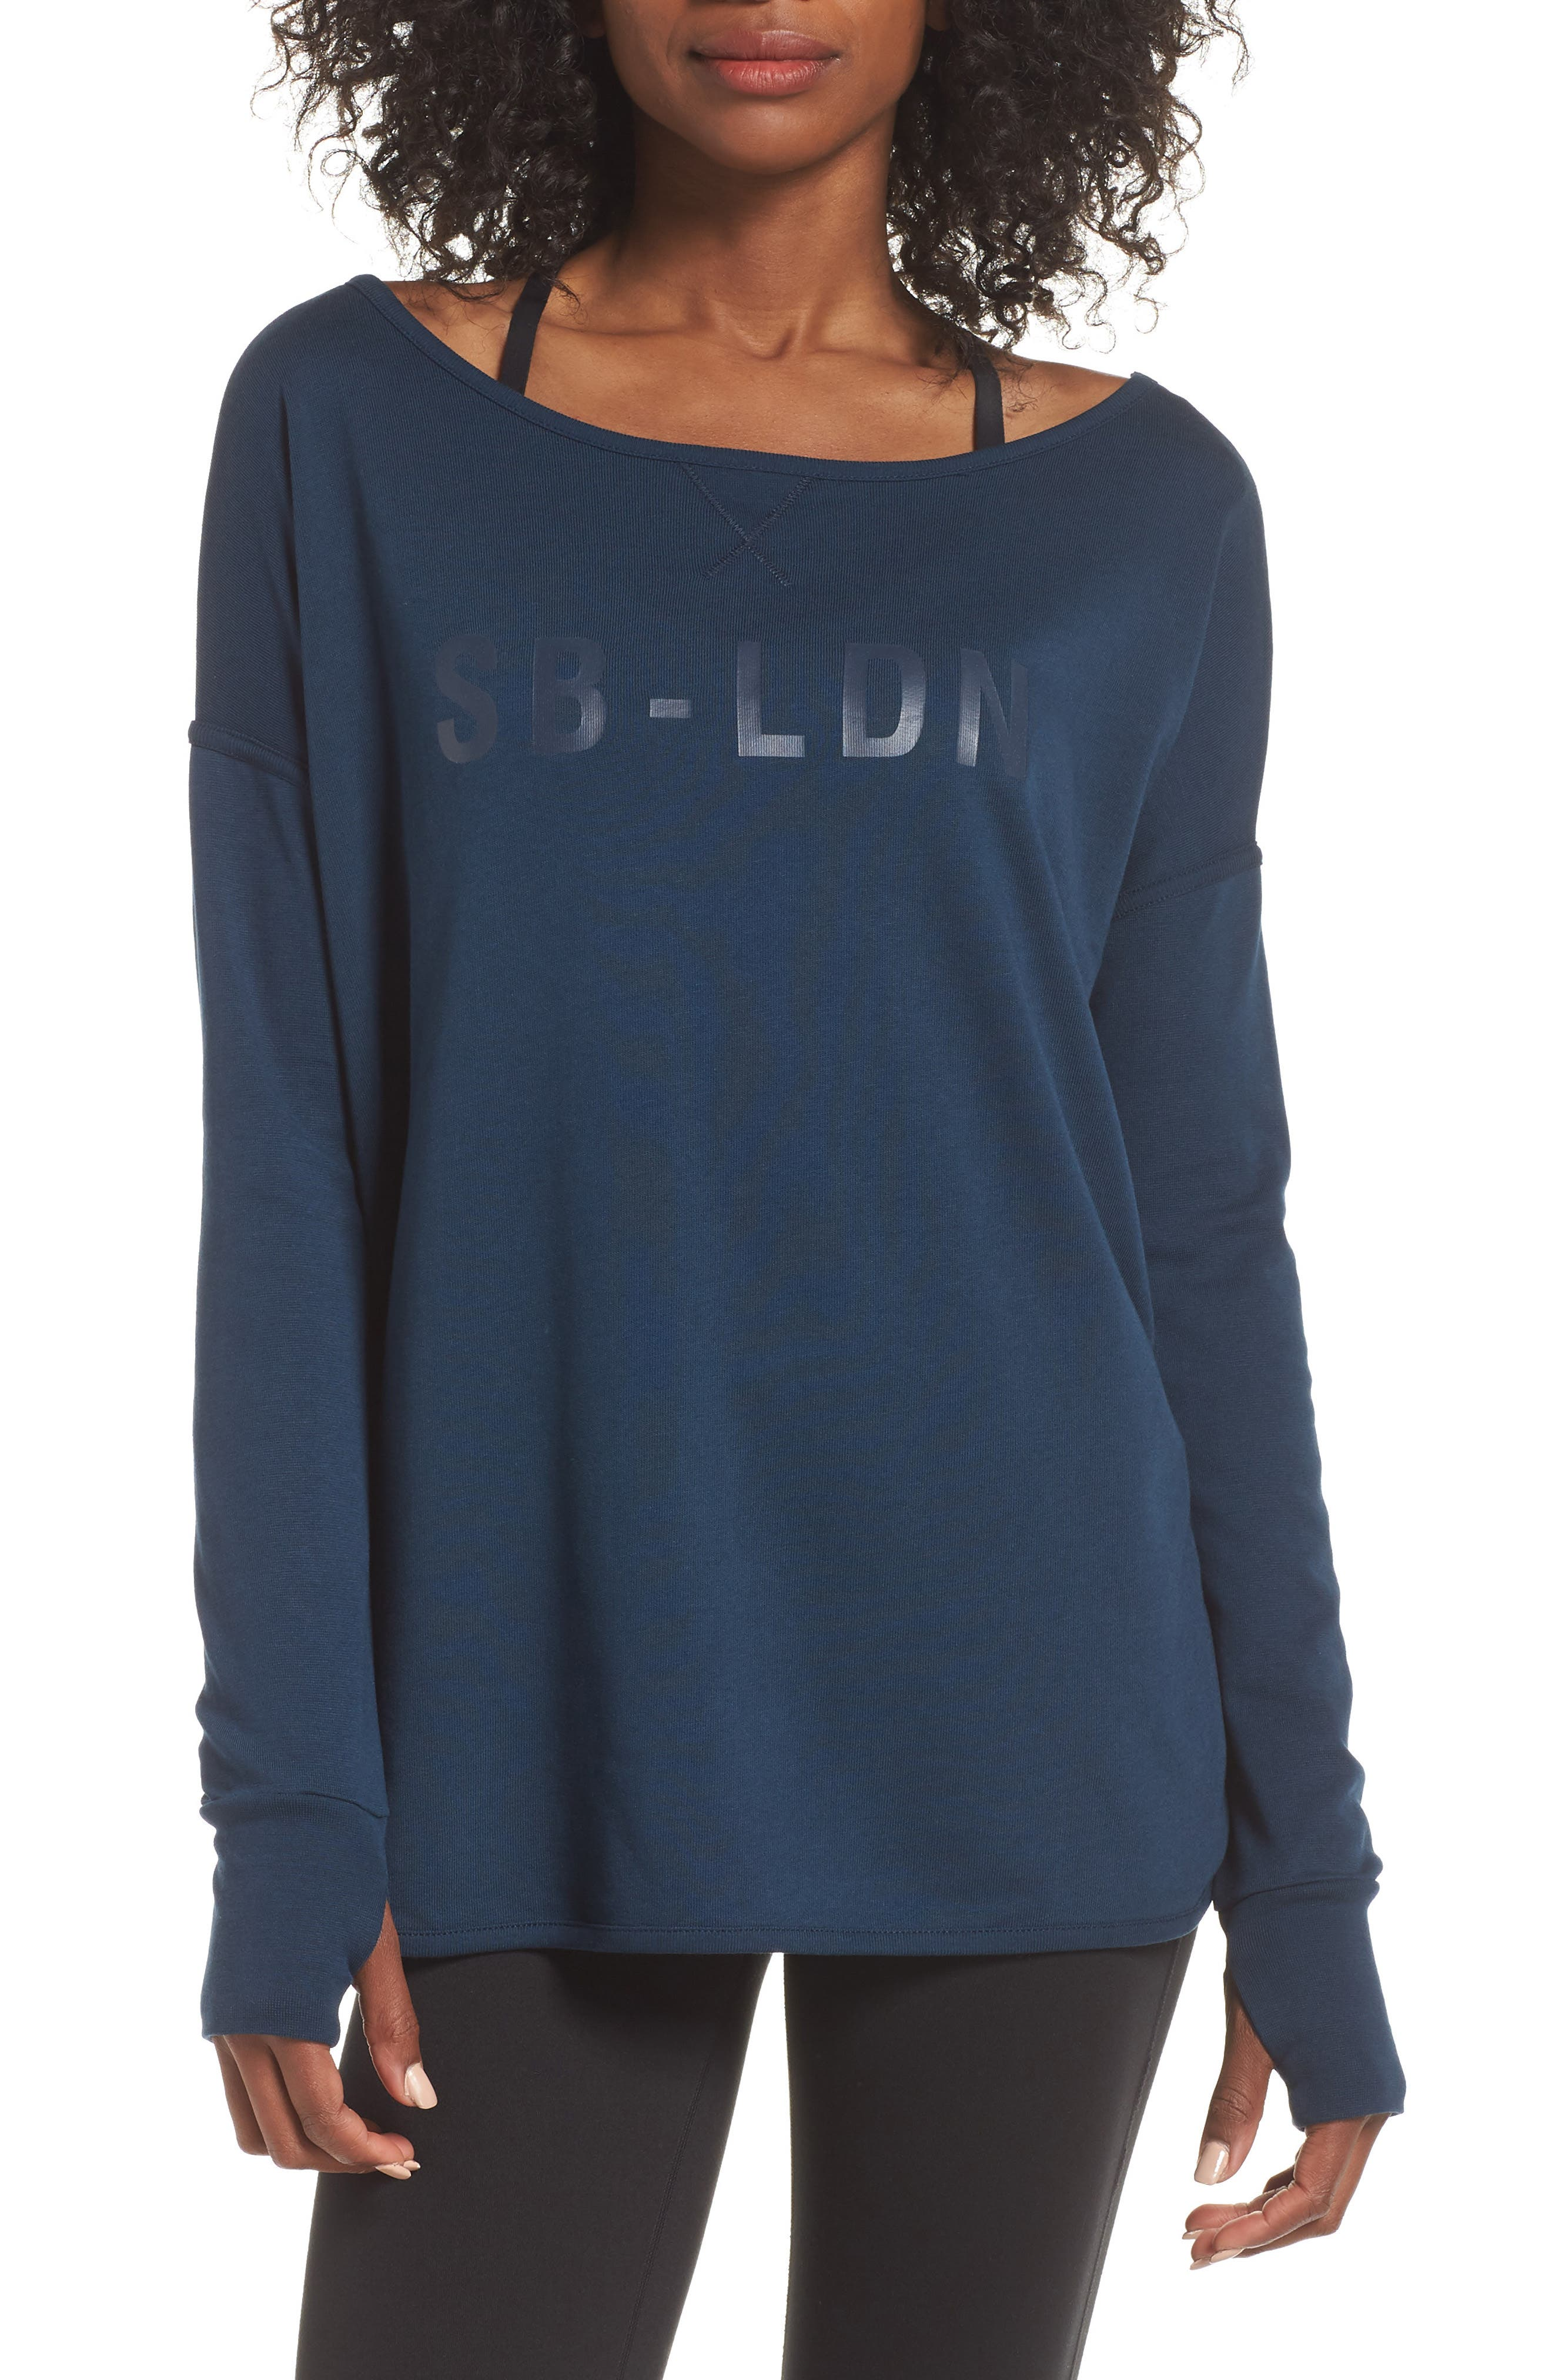 Simhasana Sweatshirt,                             Main thumbnail 1, color,                             BEETLE BLUE